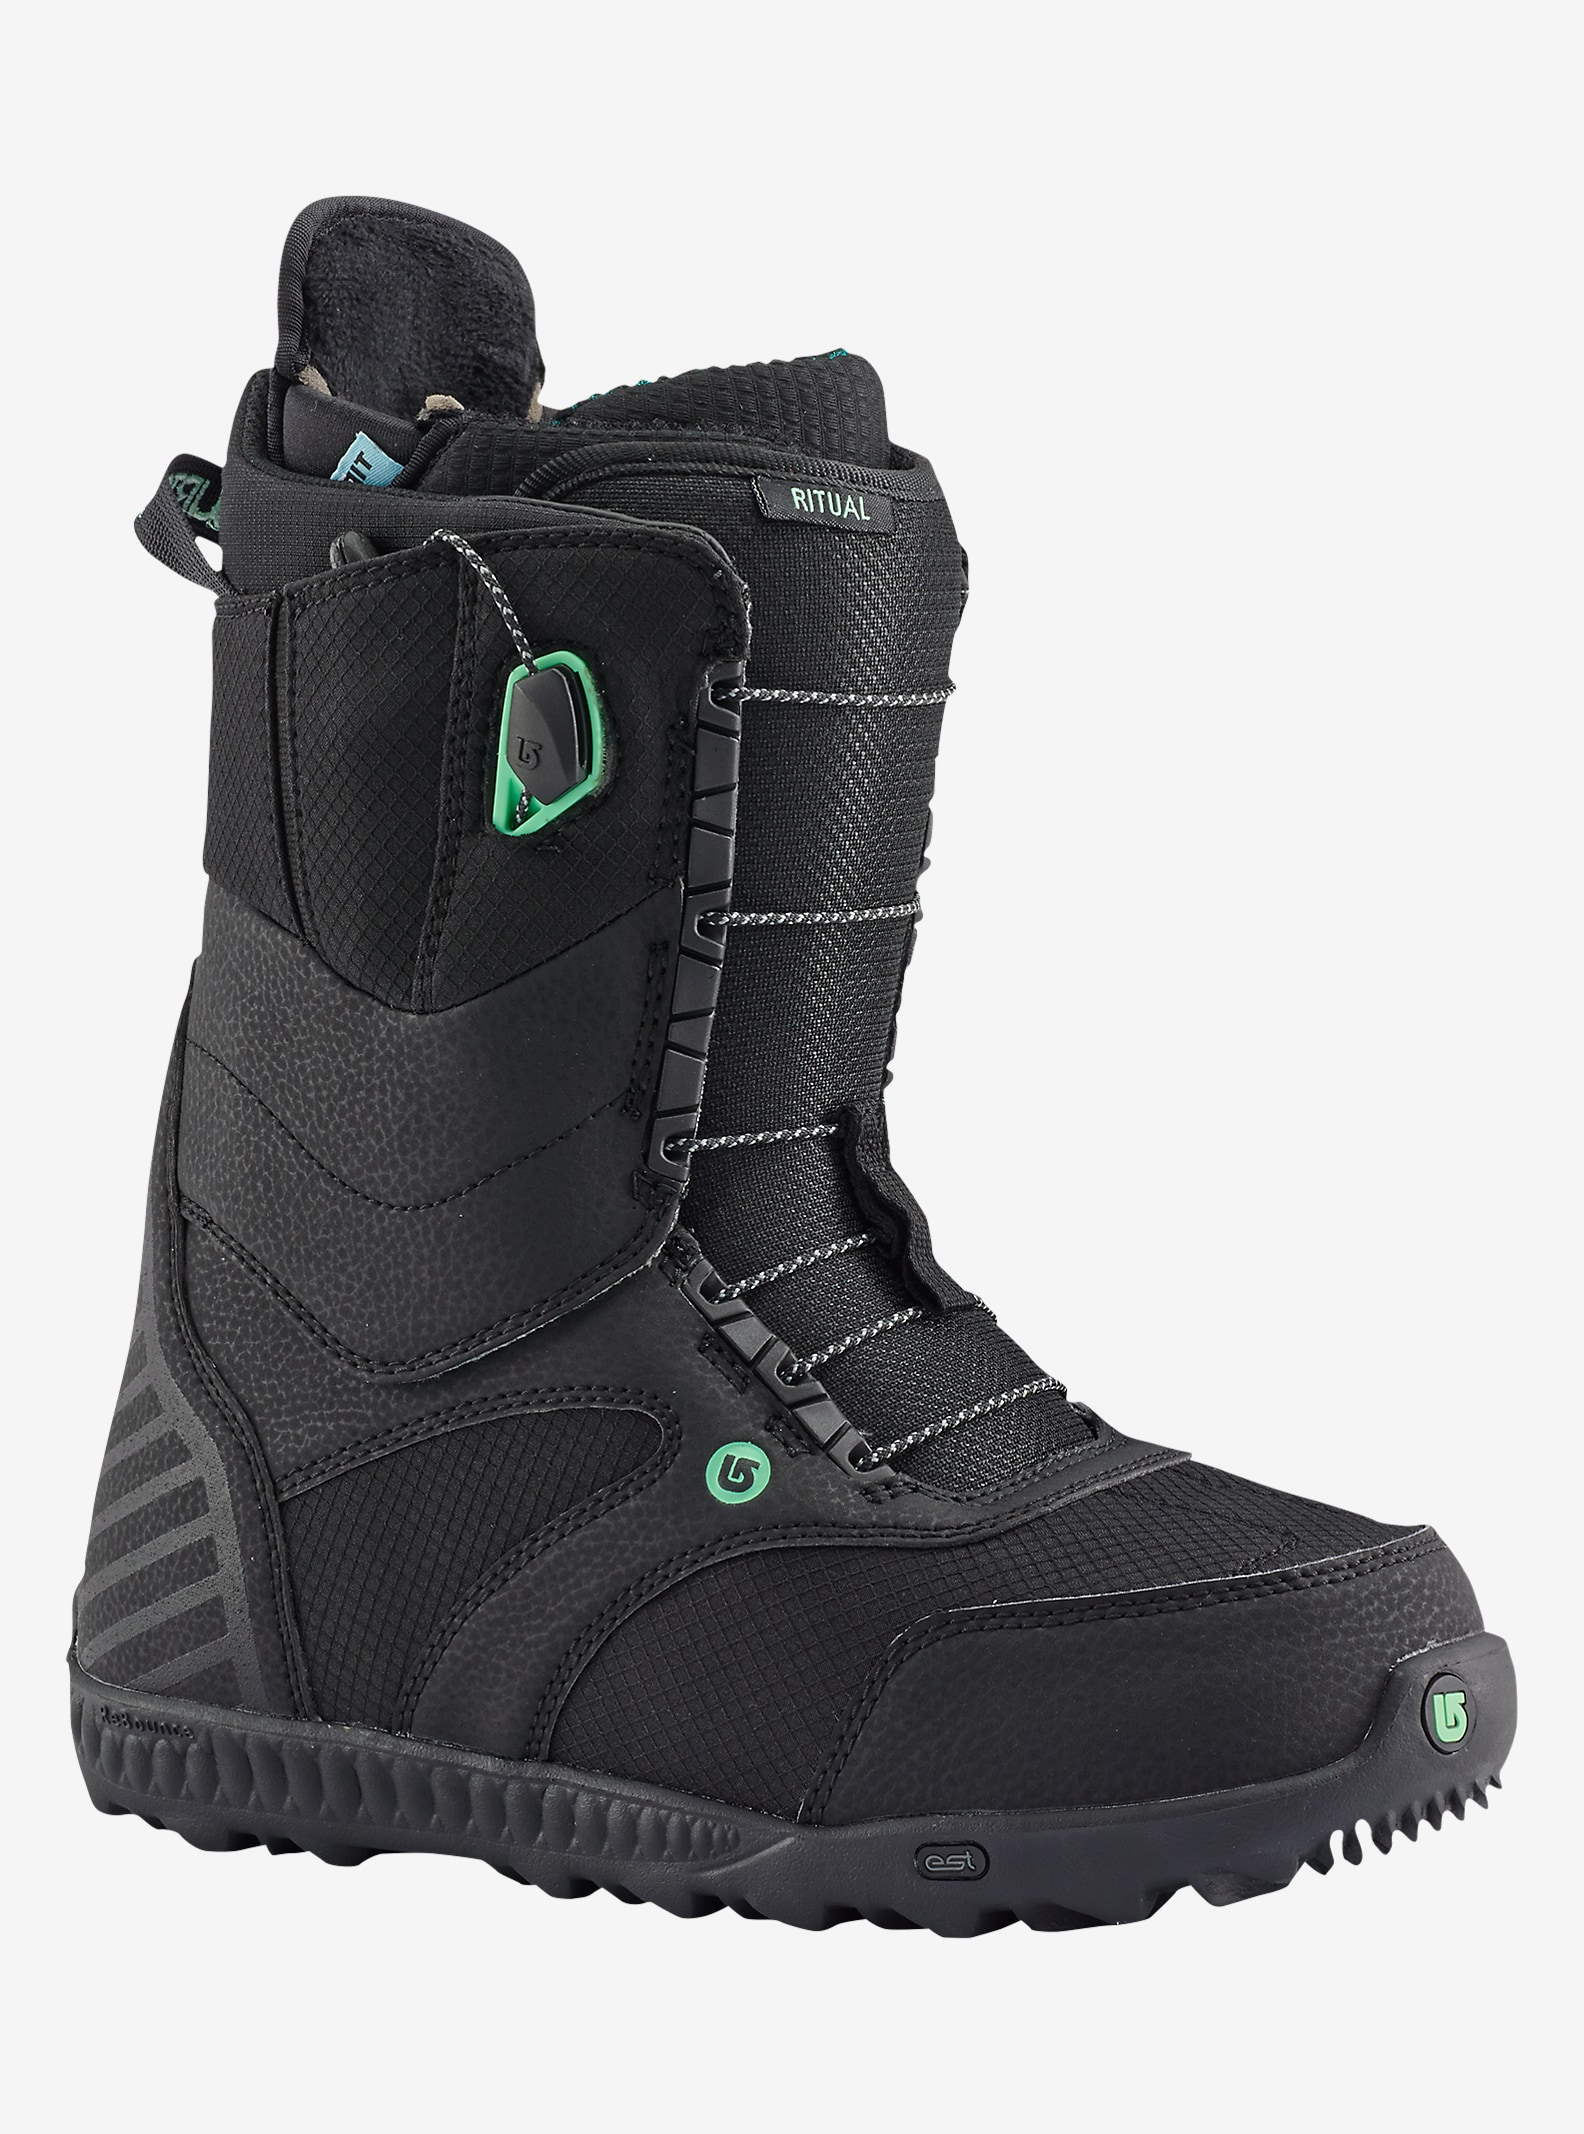 Burton Ritual Snowboard Boot shown in Black